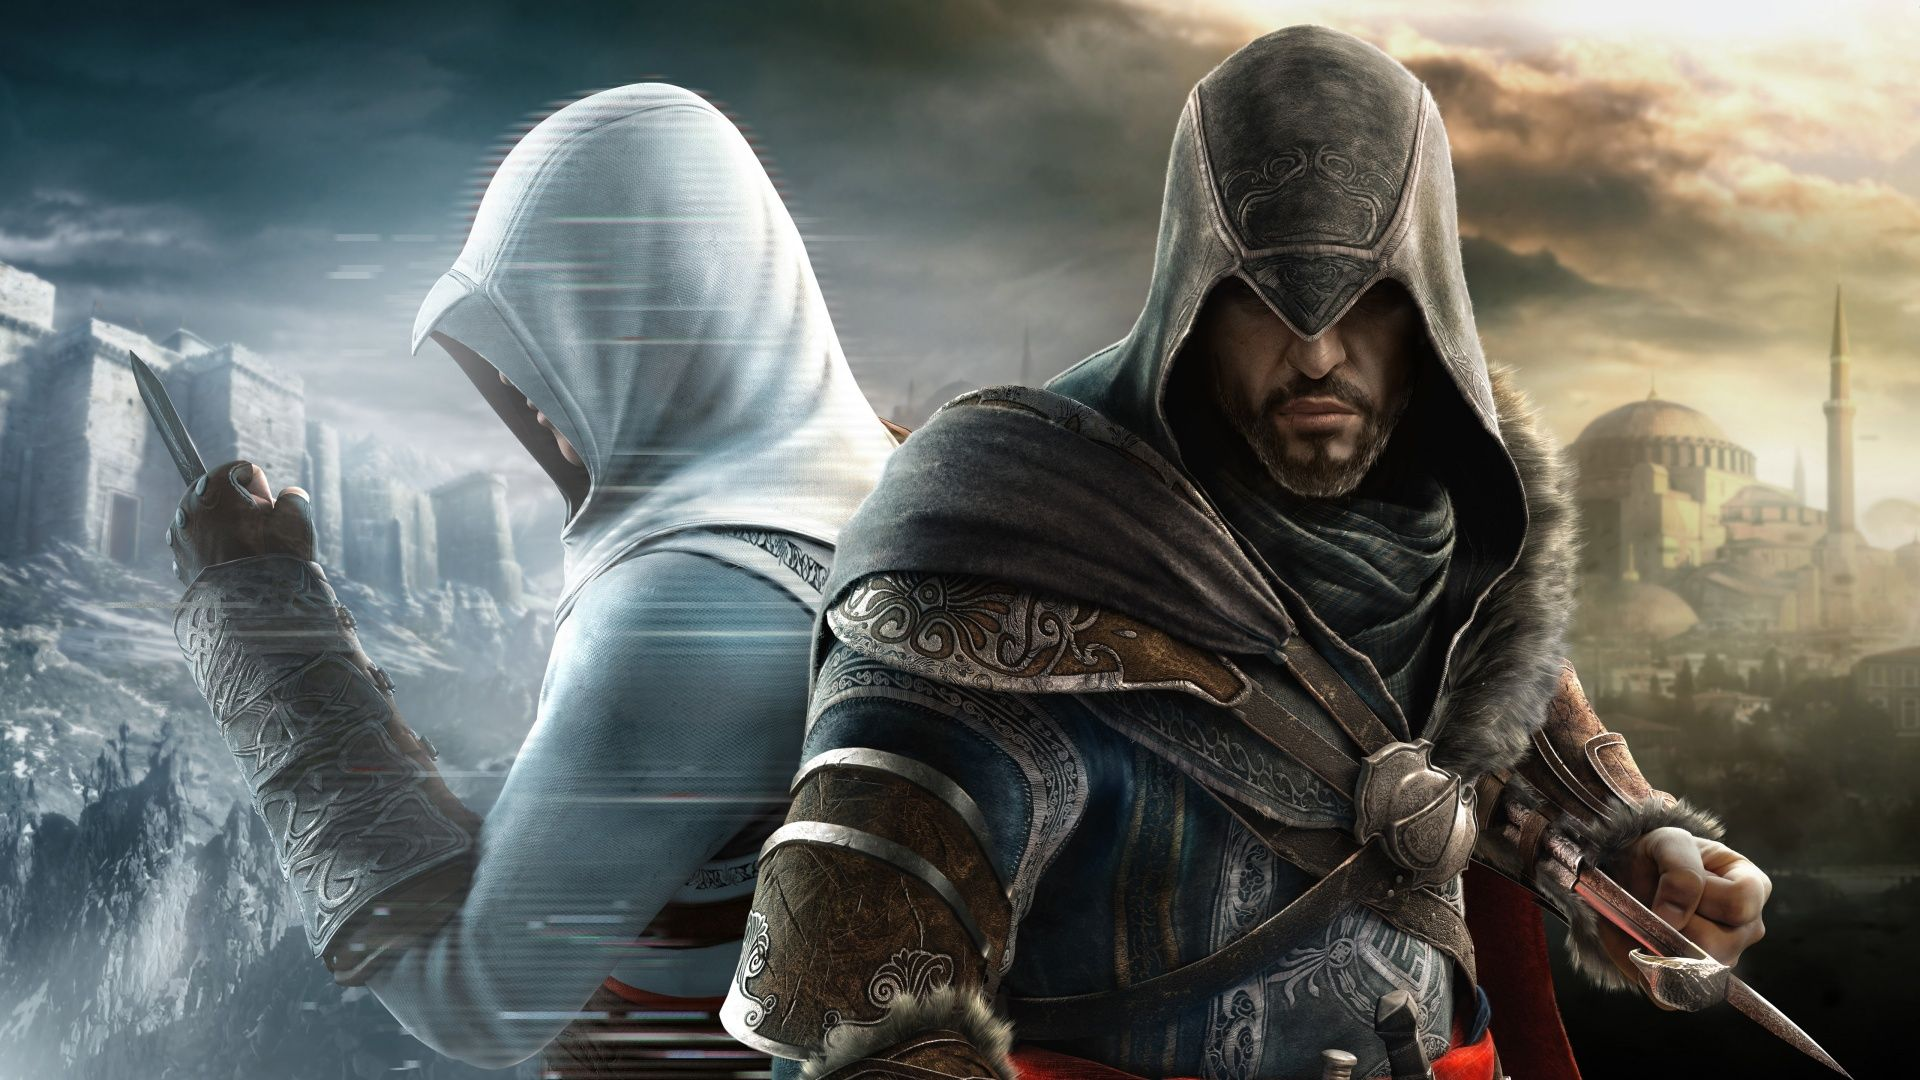 Assassins Creed Revelations обои,assassin's Creed Revelations,assassin's Creed,assassins Creed Revelations обои на рабочий стол,assassins Creed обои